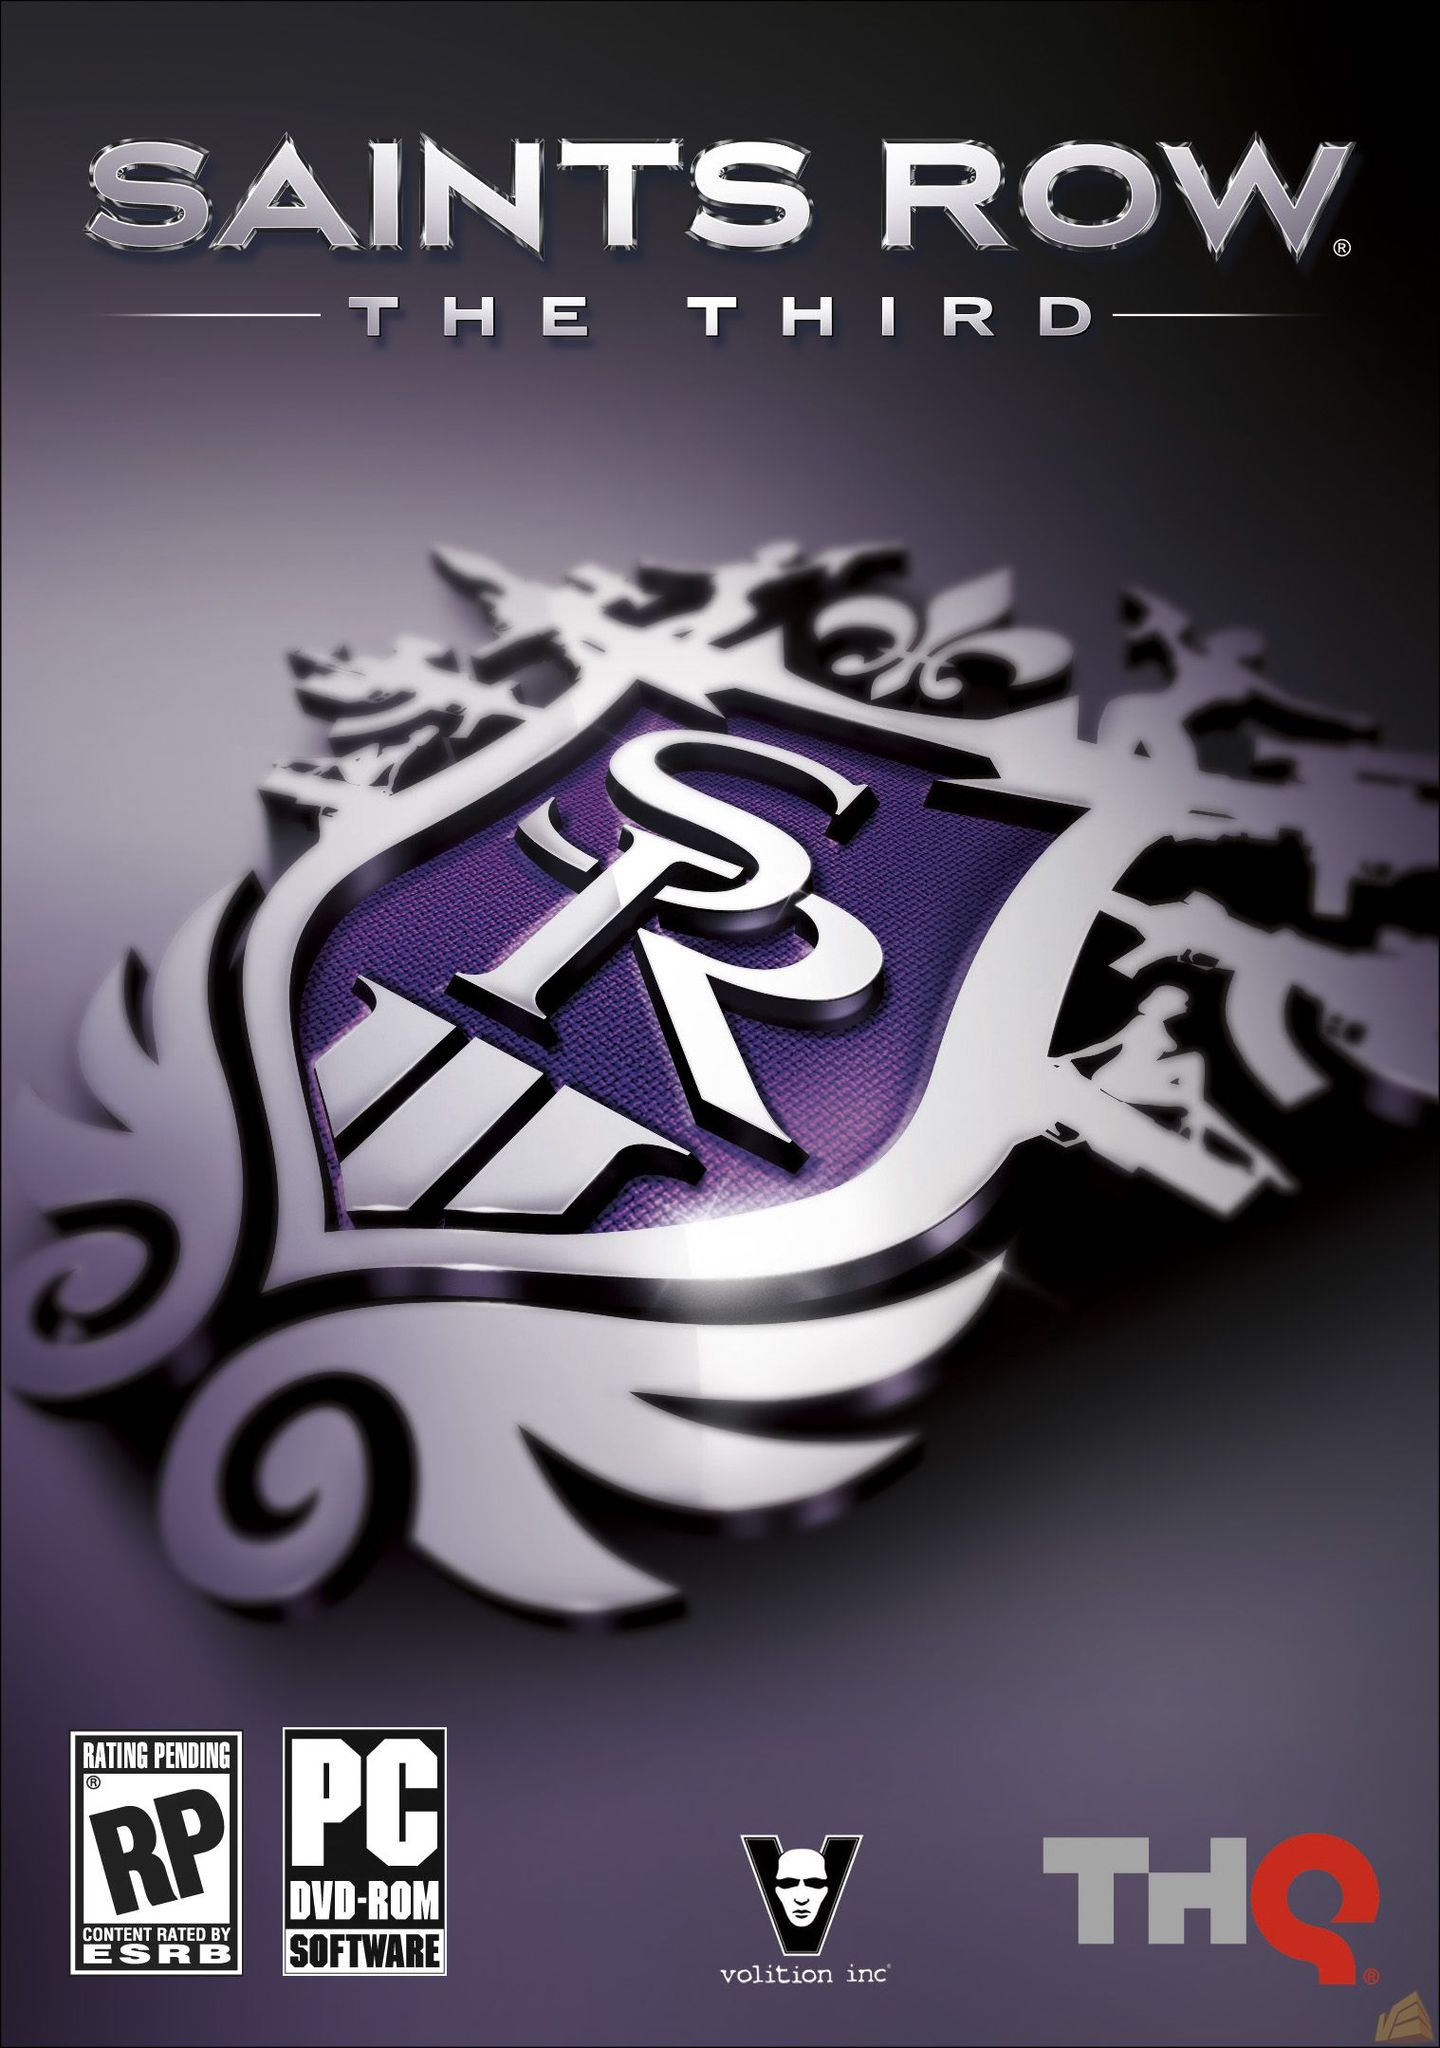 Saints Row: The Third (Video Game 2011) - IMDb on saints row 5 map, the sims 1 map, assassin's creed 1 map, saints row map only, dark souls 1 map, guild wars 1 map, driver 1 map, gta 4 map, gta 1 map, dragon quest 1 map, portal 1 map, uncharted 1 map, gta san andreas map, risen 1 map, saints row hell map, saints row iv map, just cause 1 map, skyrim map, saints row cd map, resident evil 1 map,